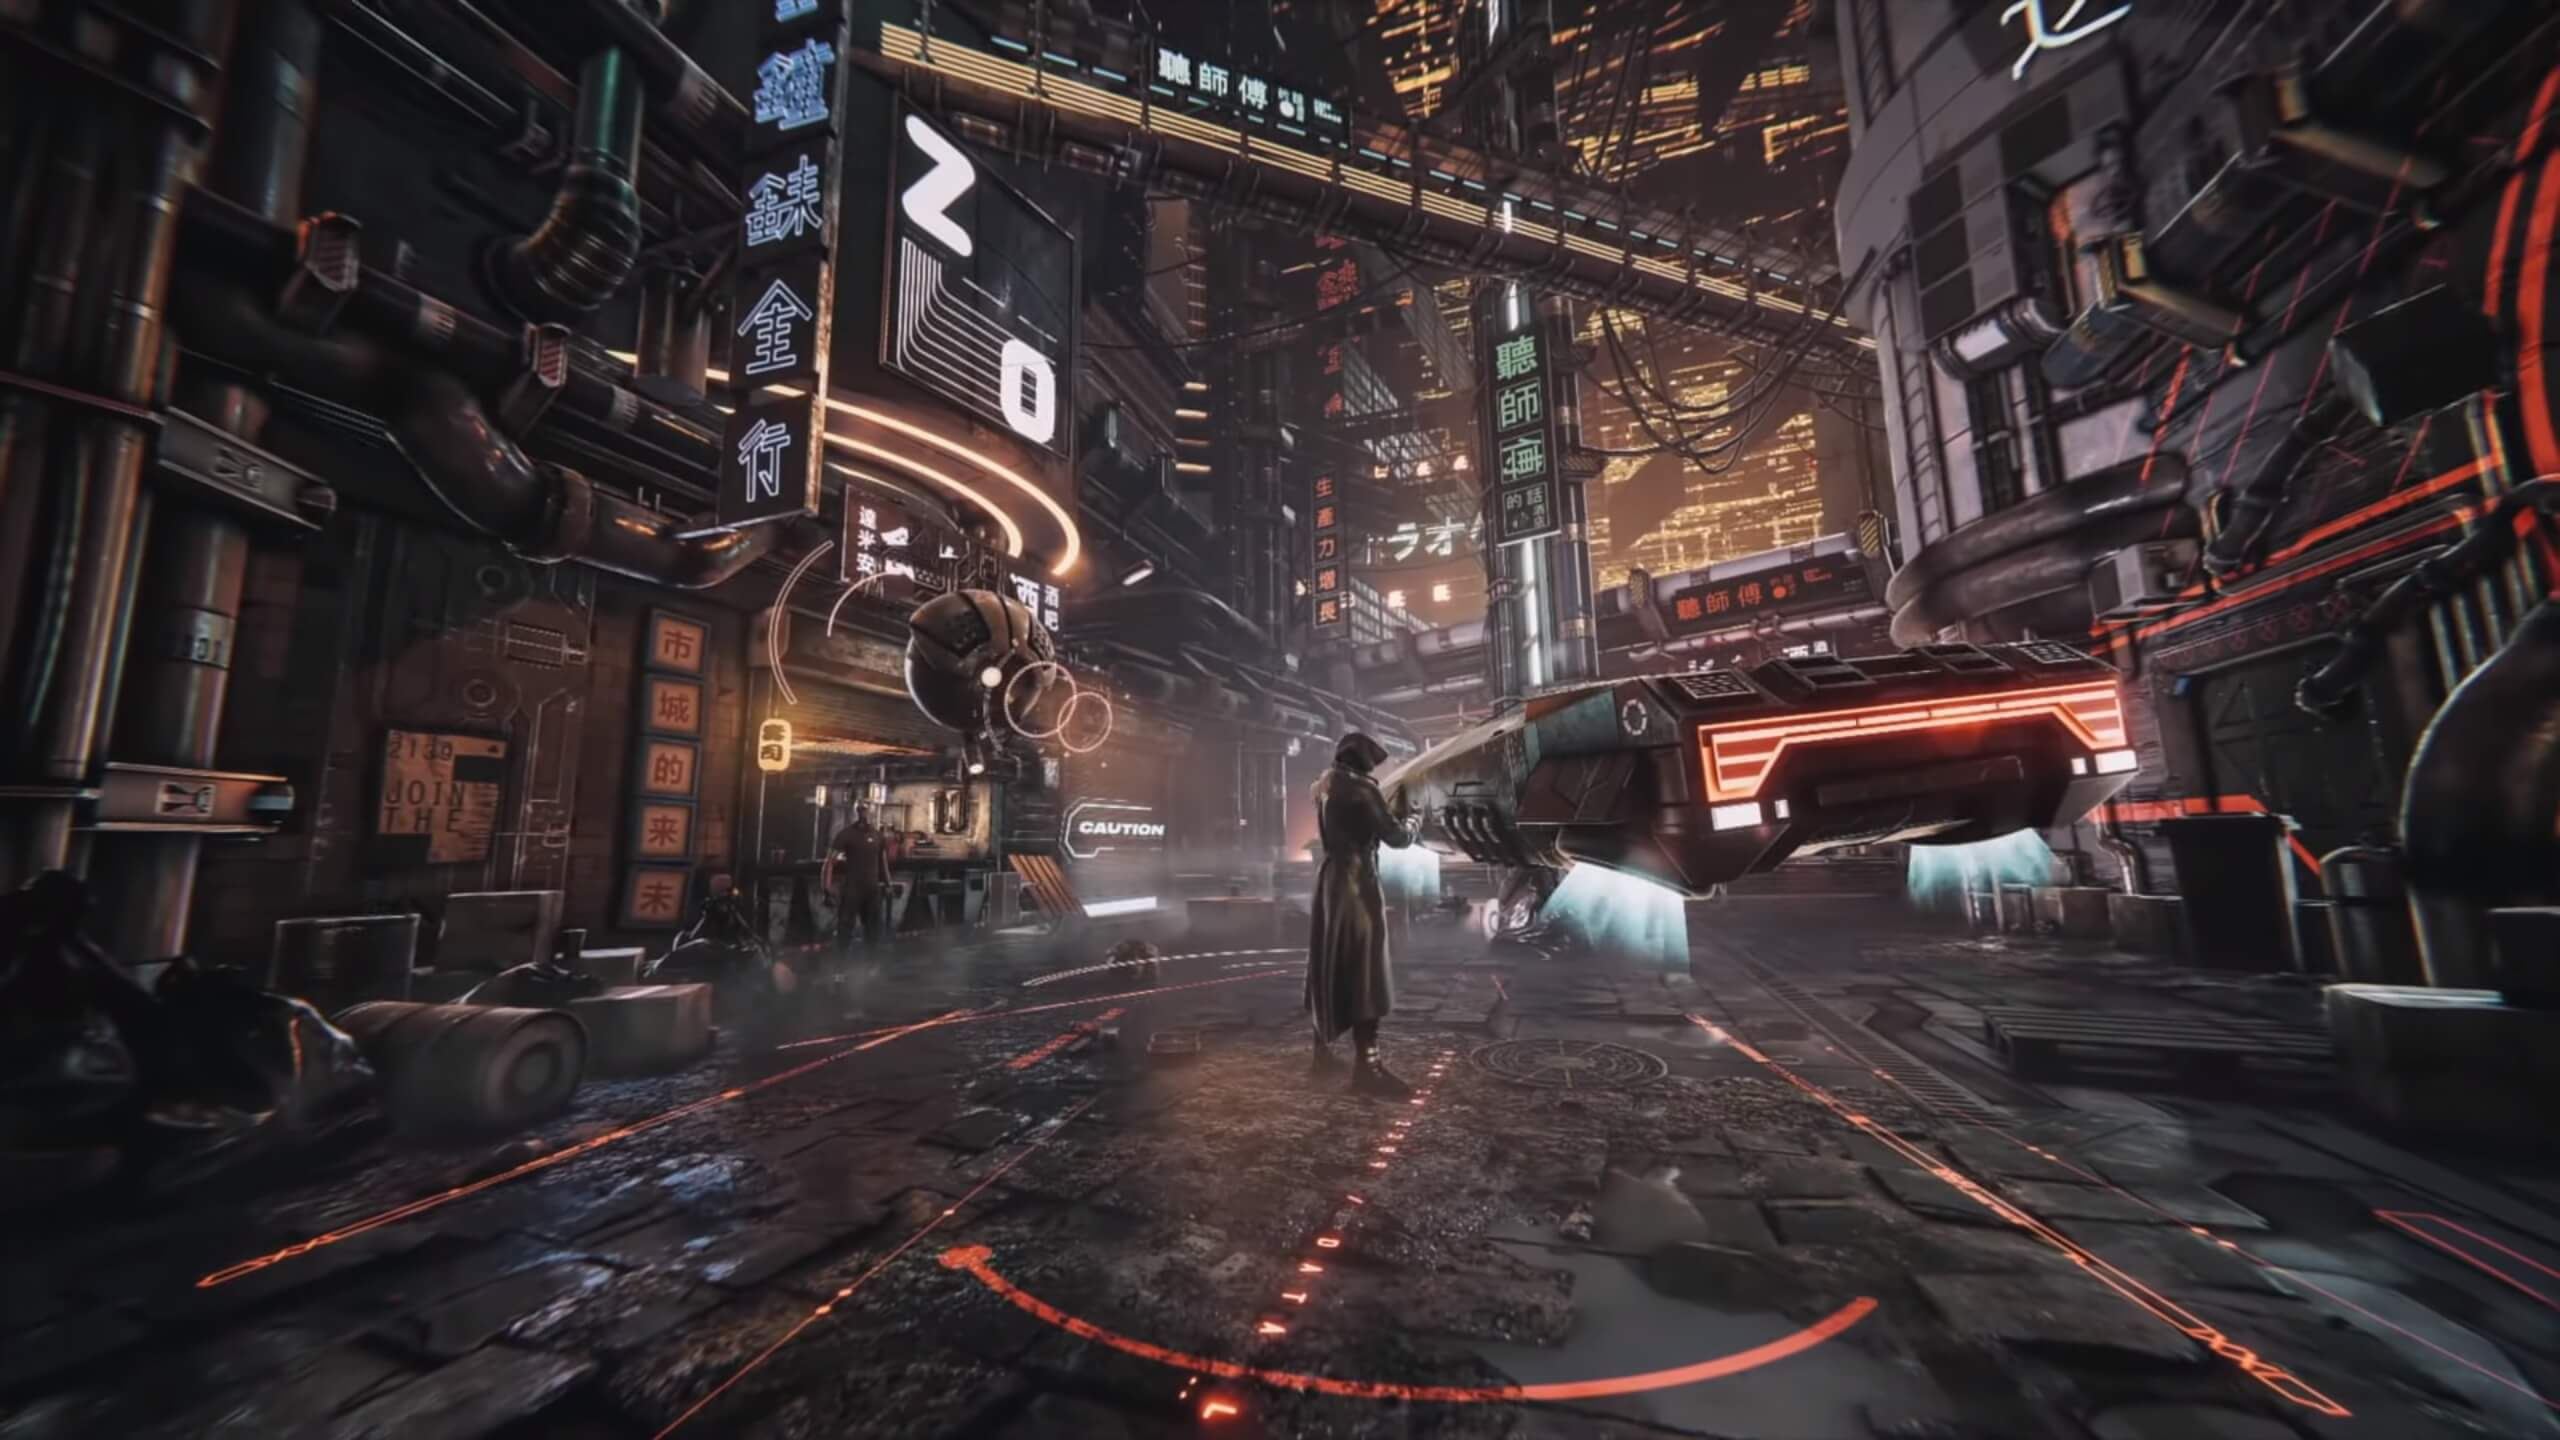 Here is what a Cyberpunk next-gen game could look like in Unity Engine